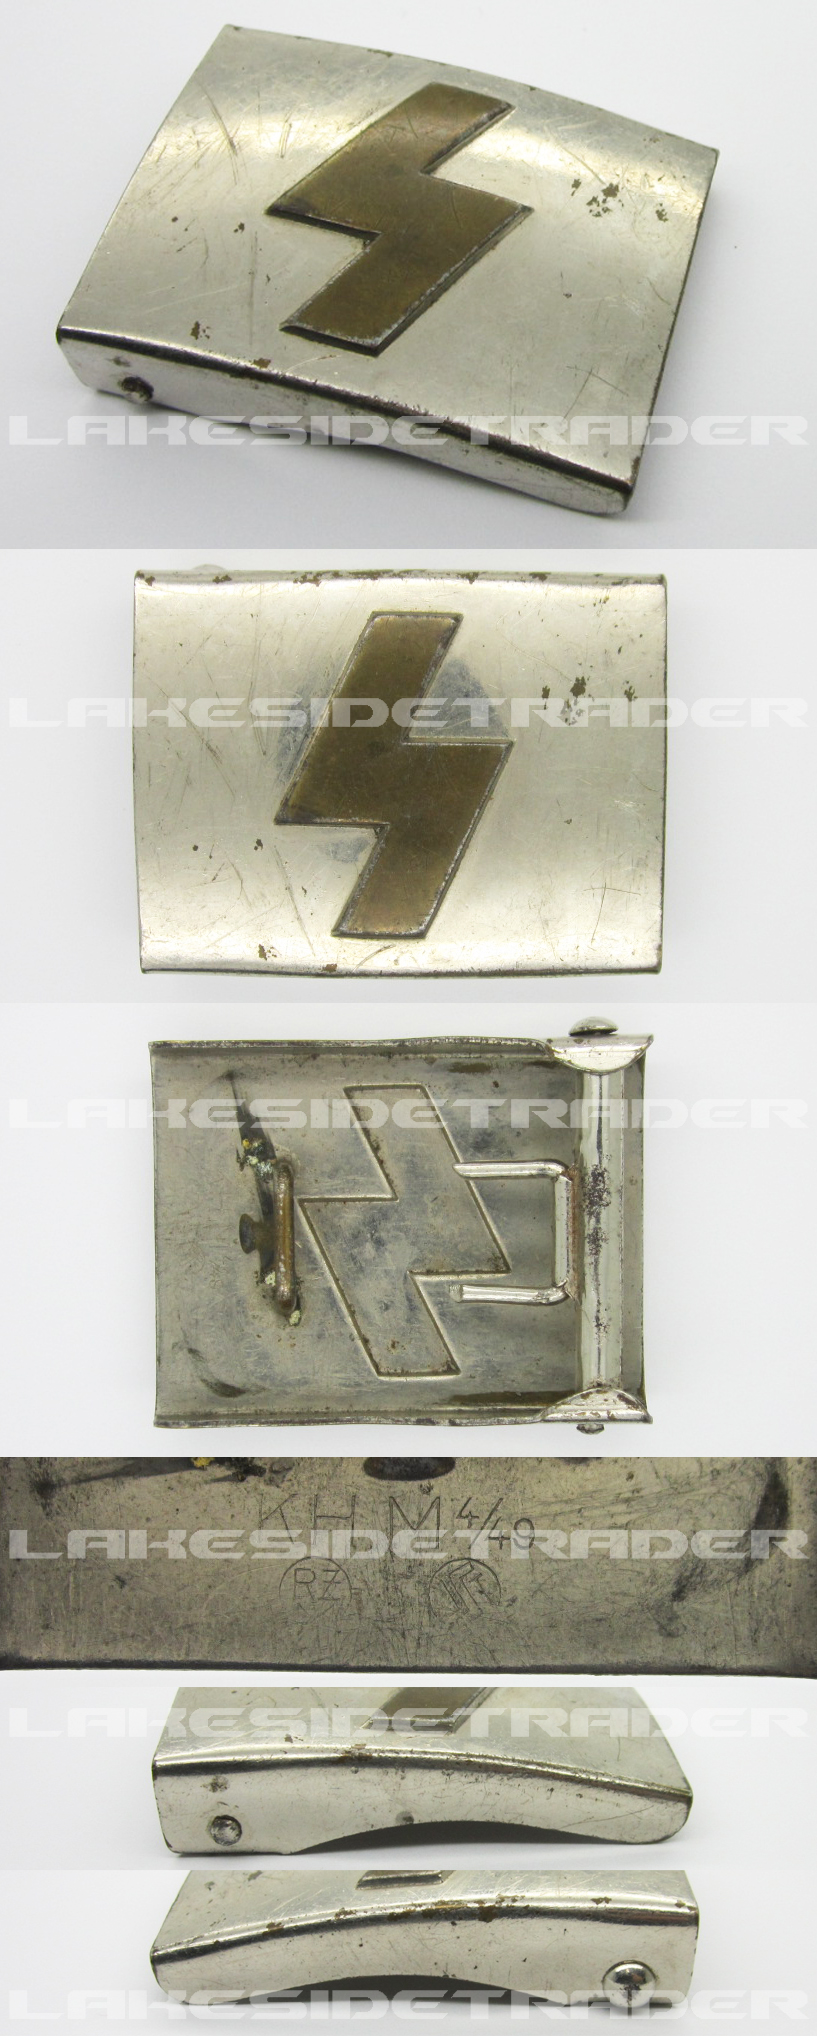 DJ Belt Buckle by Steinhauer & Lück